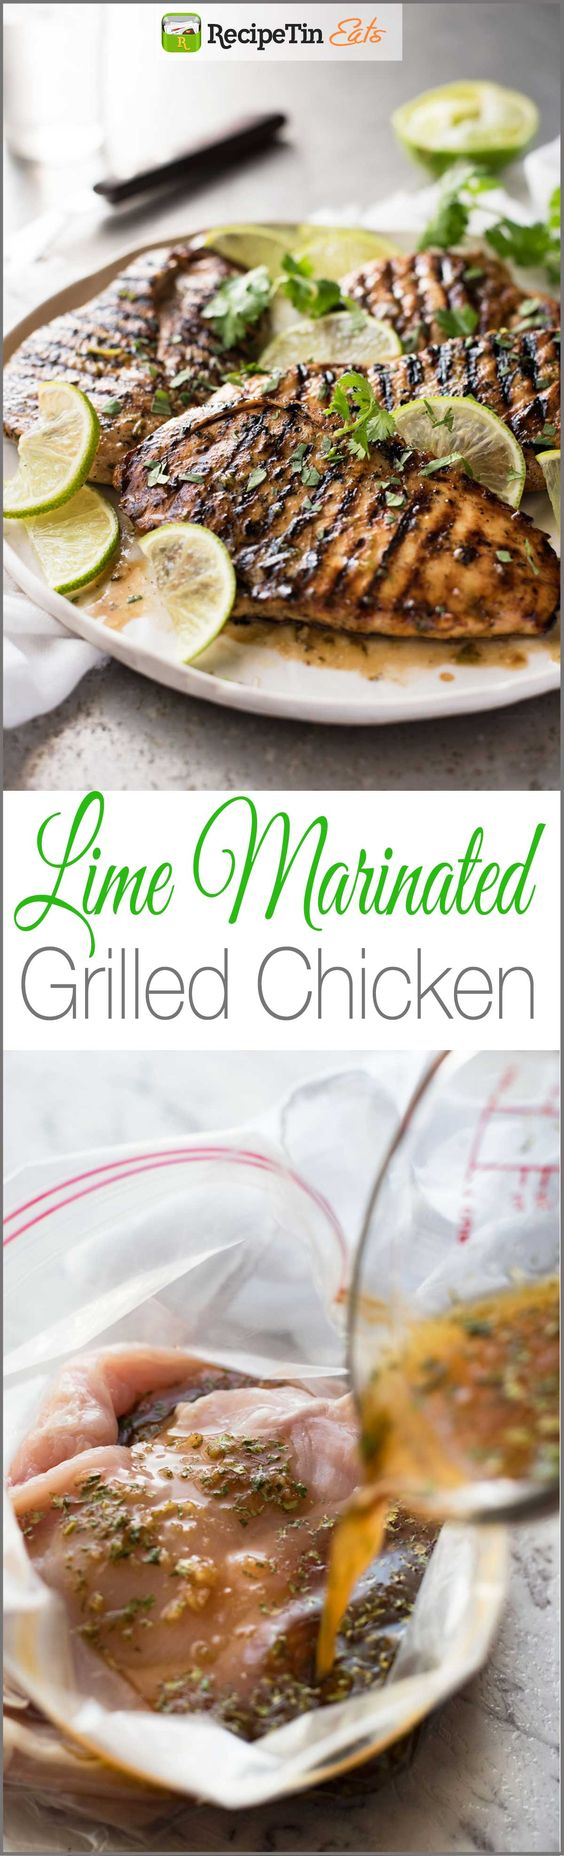 Lime Marinated Grilled Chicken - Lovely depth of flavour in this simple marinade that REALLY infuses the chicken with lime flavors!